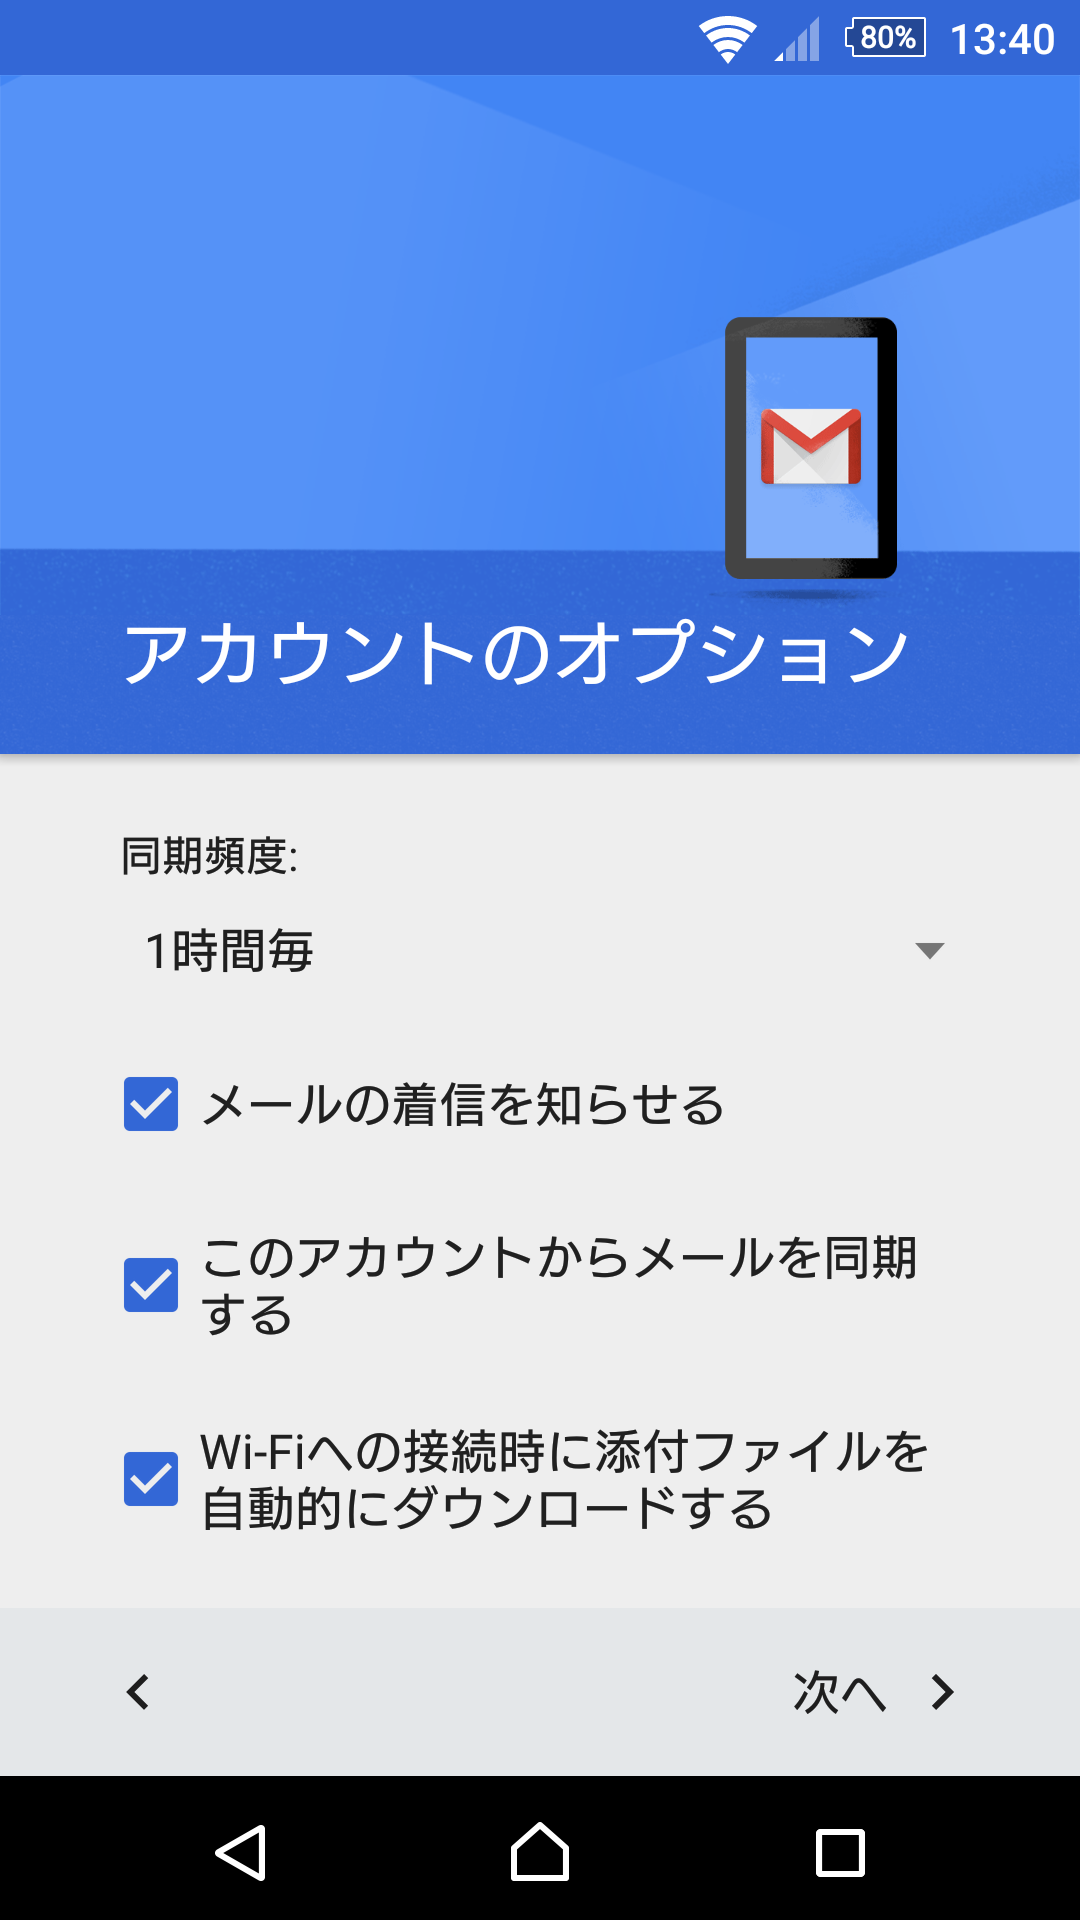 Android版 Gmailアプリ オプション設定画面